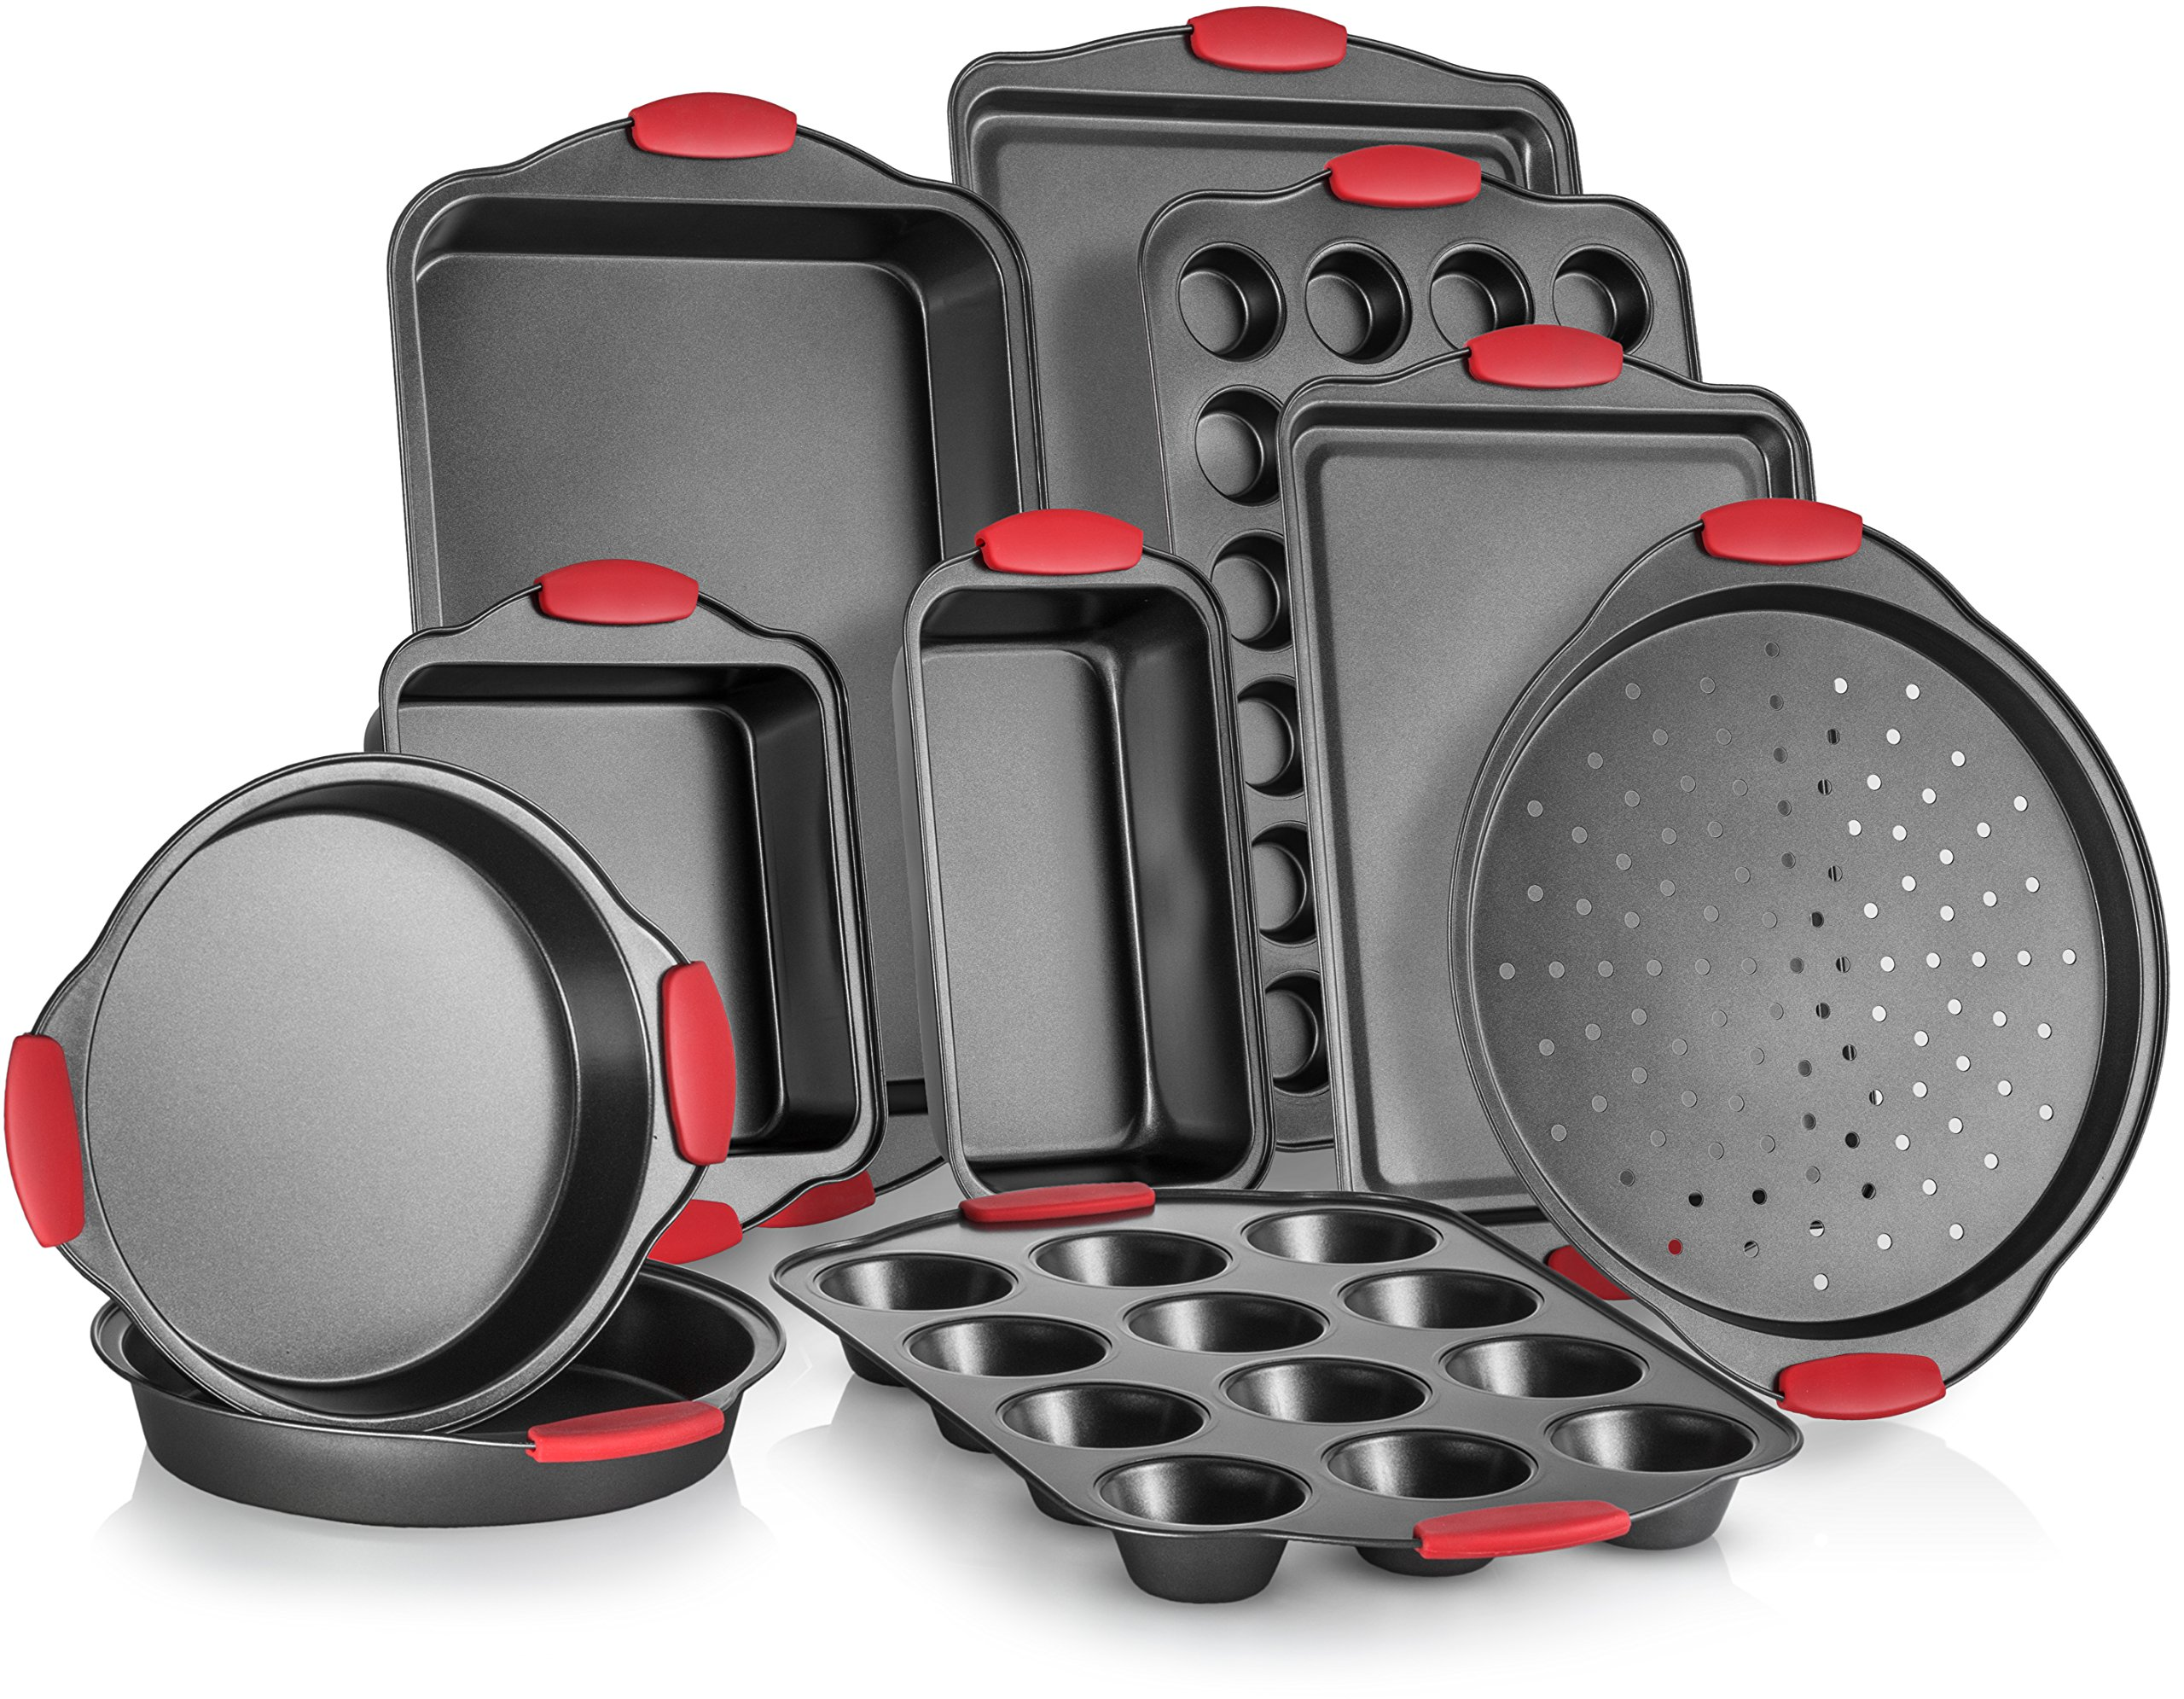 Perlli 10-Piece Nonstick Carbon Steel Bakeware Set With Red Silicone Handles | |Metal, Reusable, Quality Kitchenware For Cooking & Baking Cake Loaf, Muffins &More | Non Stick Kitchen Supplies by Perlli